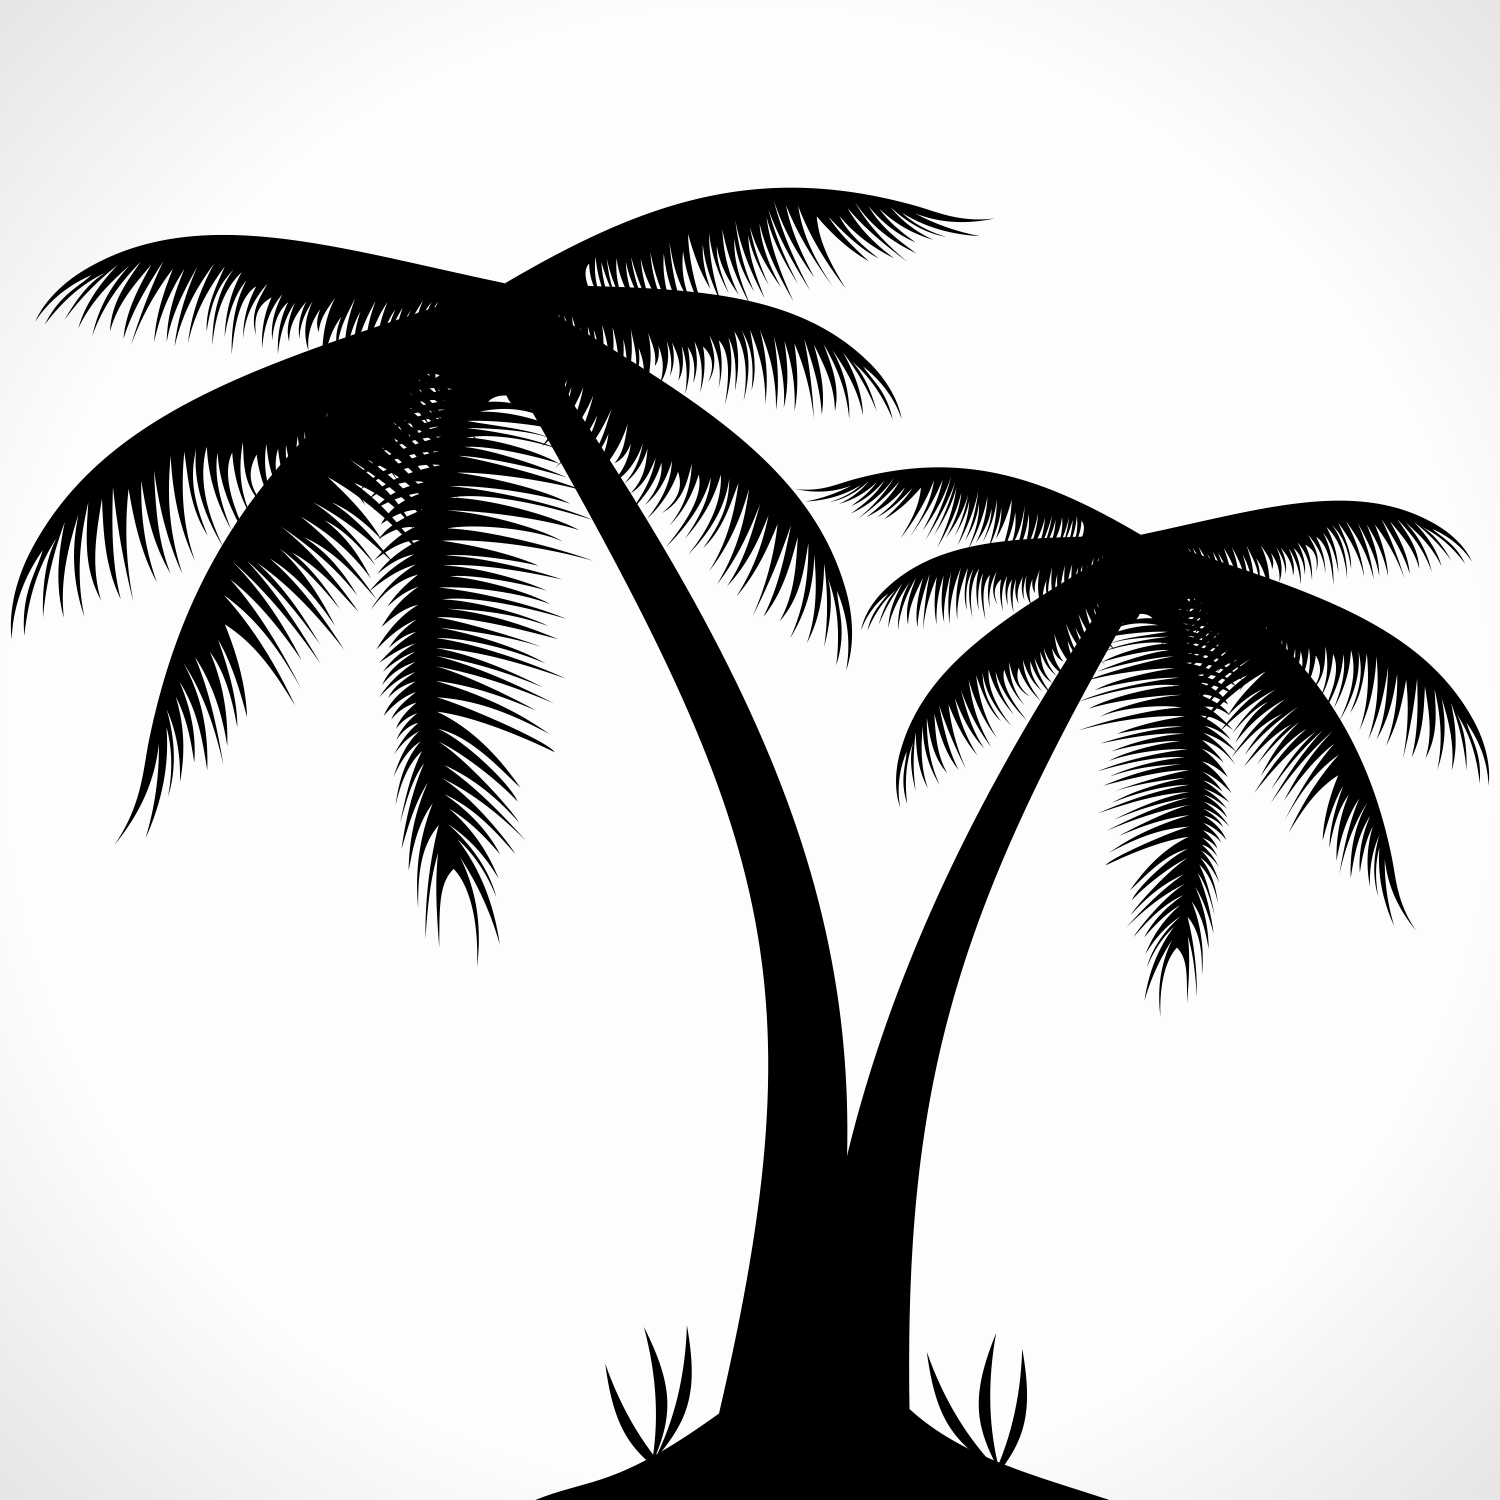 Palm tree clipart vector free banner royalty free library Free Palm Tree Vector Art Free, Download Free Clip Art, Free ... banner royalty free library